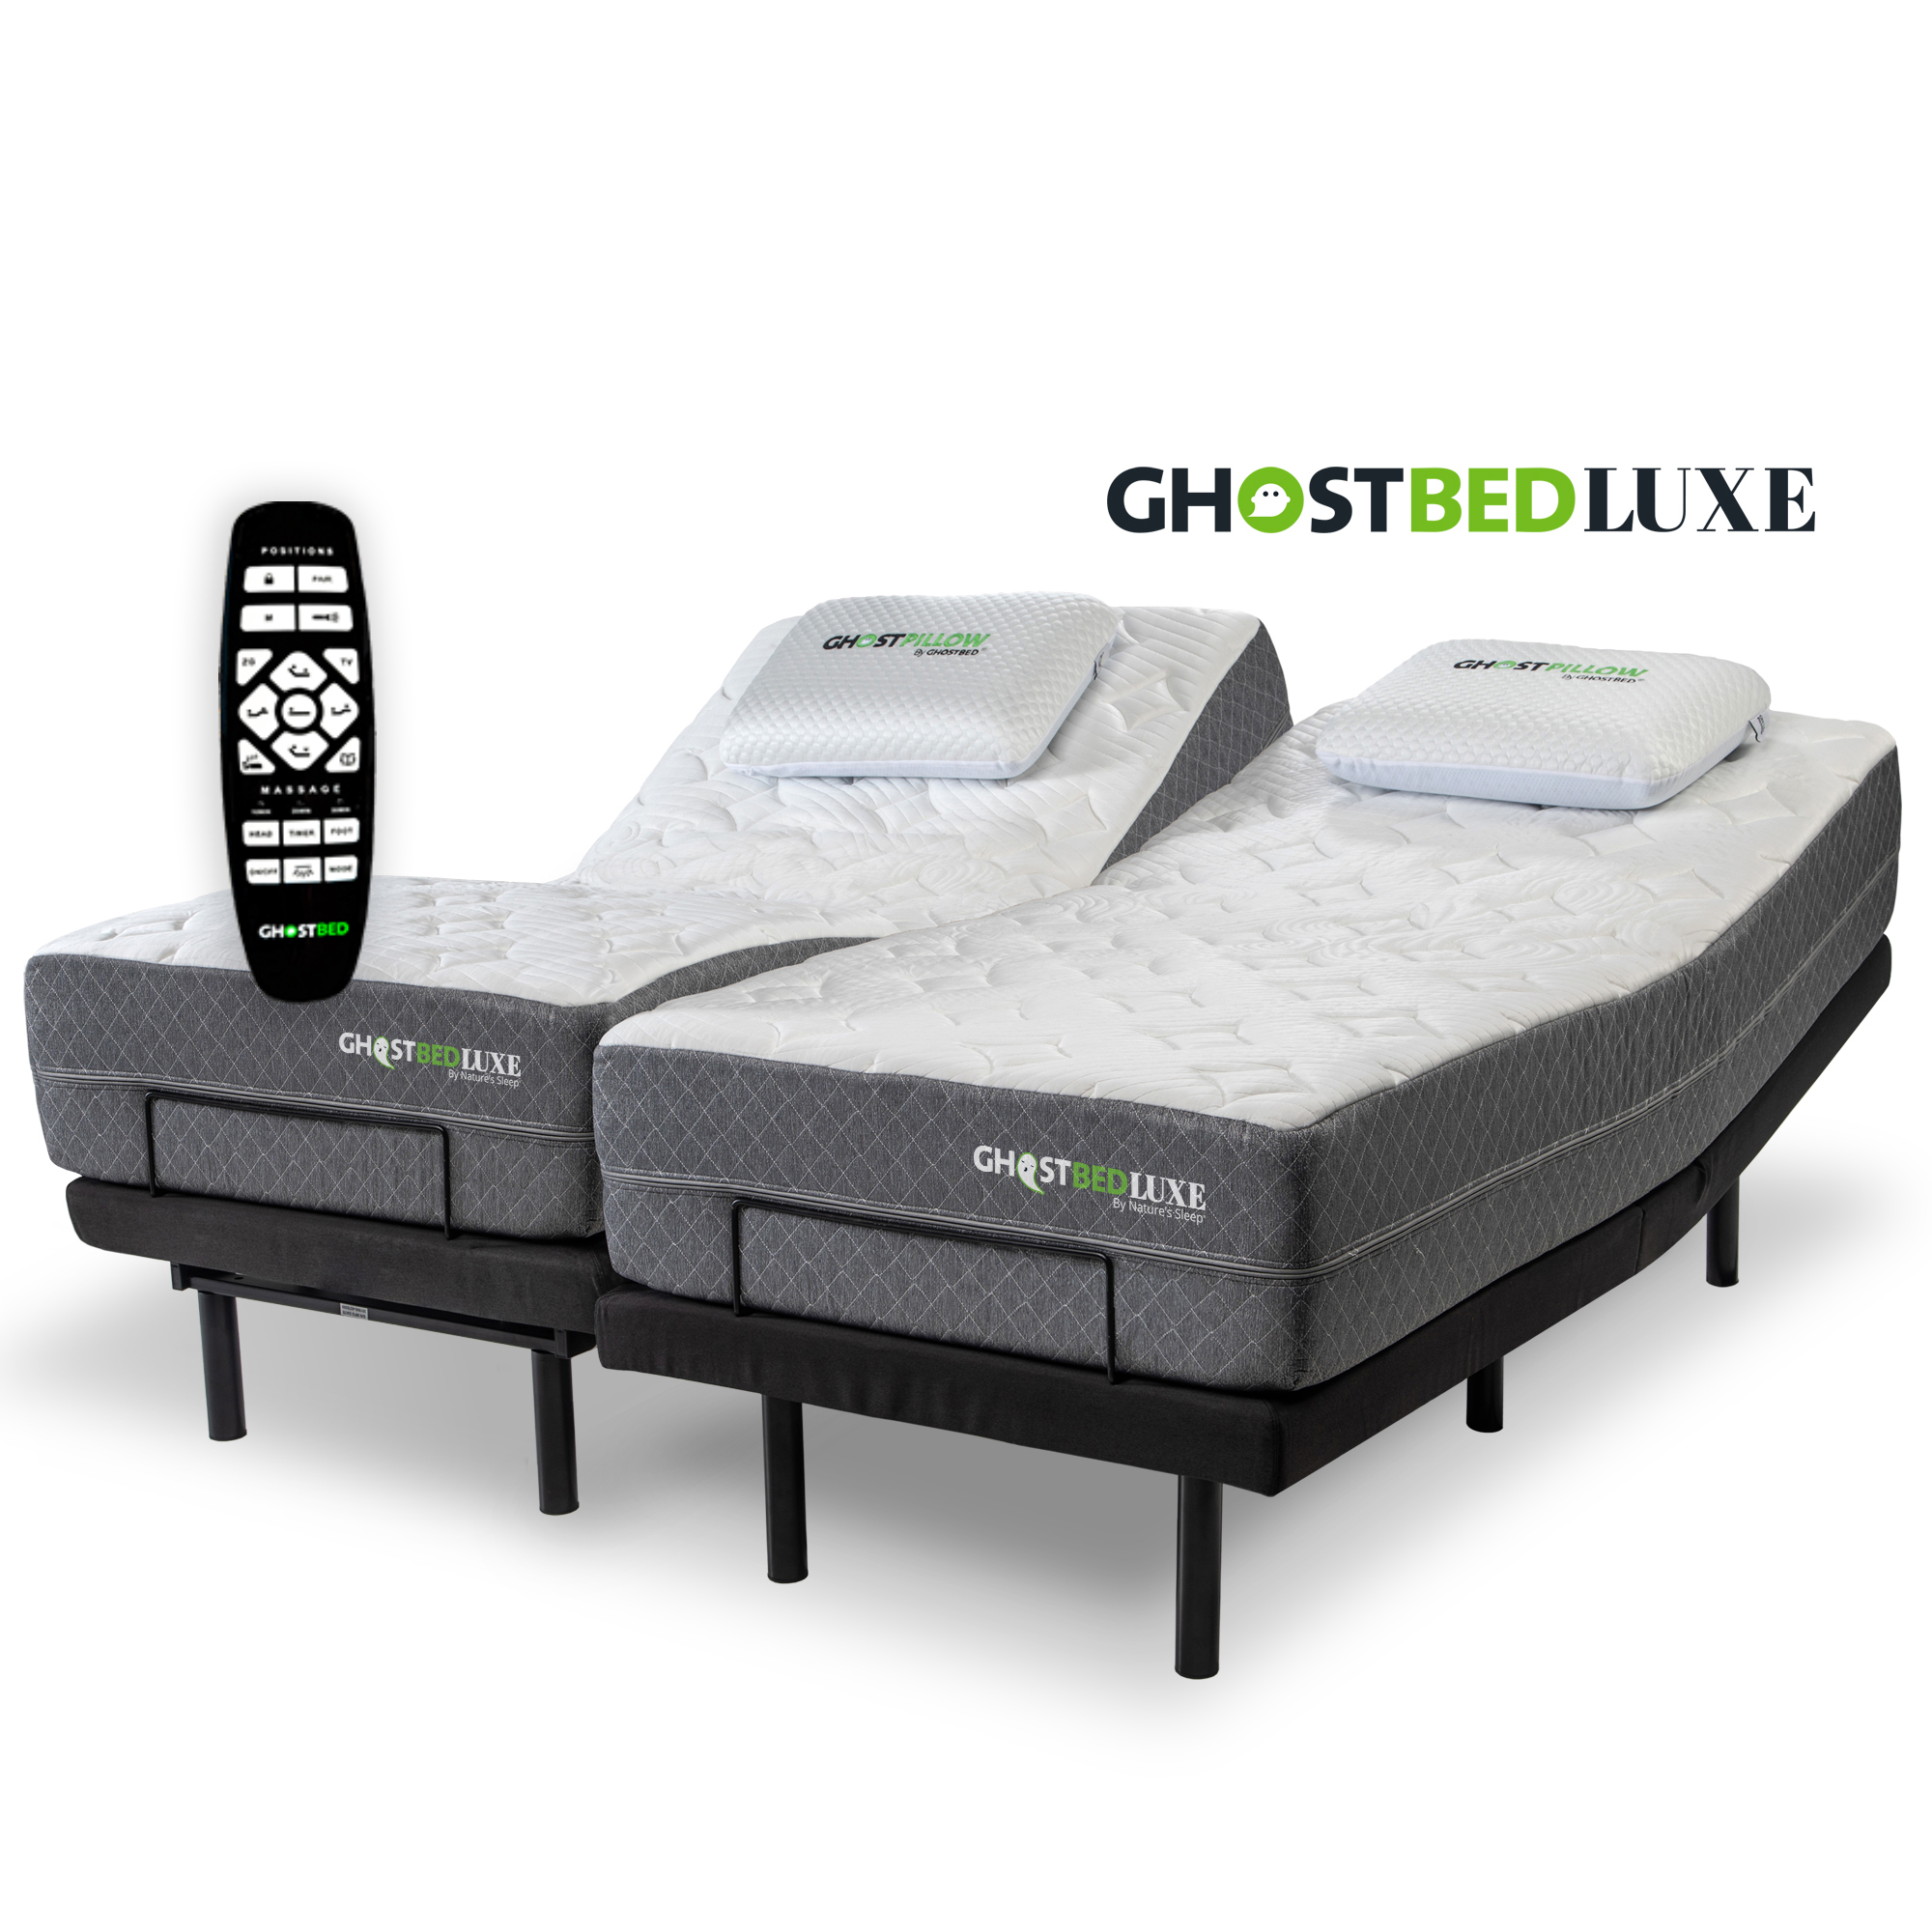 Head and Foot Incline Massage Comsuit Adjustable Bed Frame Base USB Charge Wireless Remote No Tools Required Assembly Twin XL Zero Gravity Under-Bed Lighting